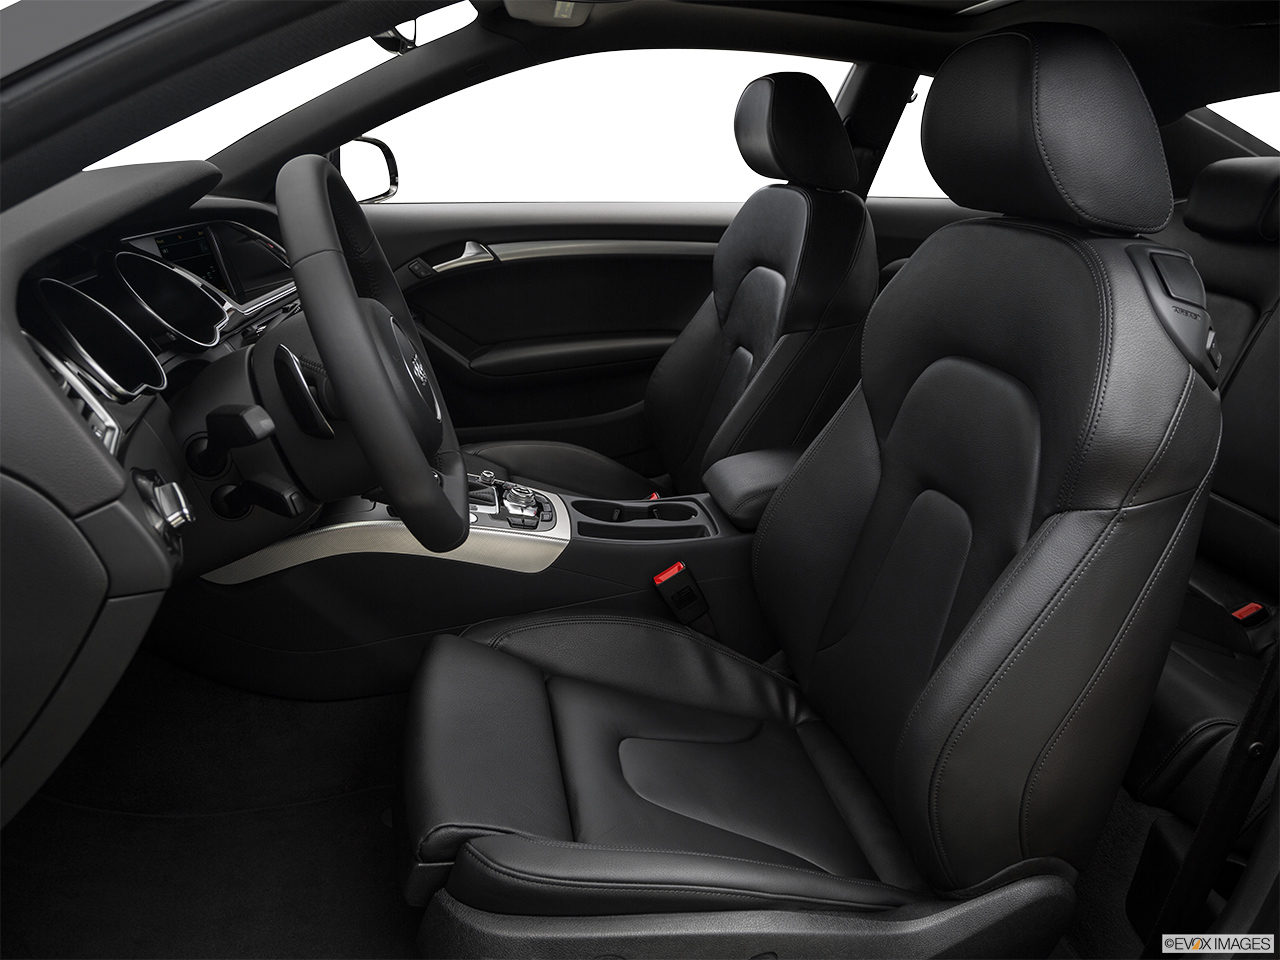 2017 Audi A5 Sport 2.0 TFSI Front seats from Drivers Side.